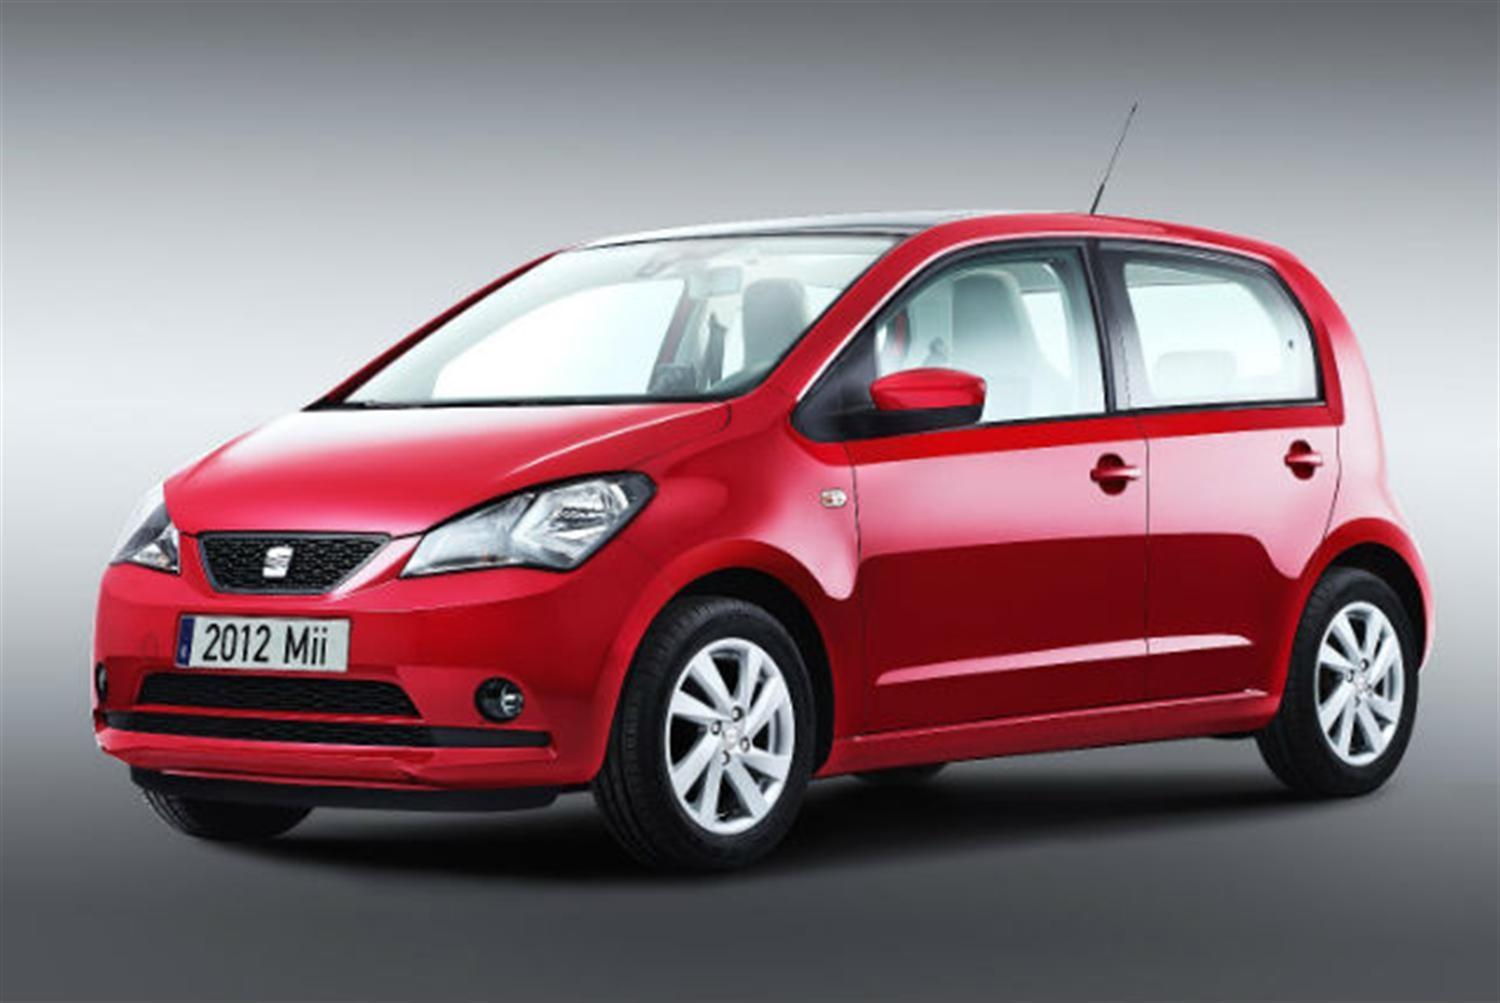 New Seat Mii on Sale in June